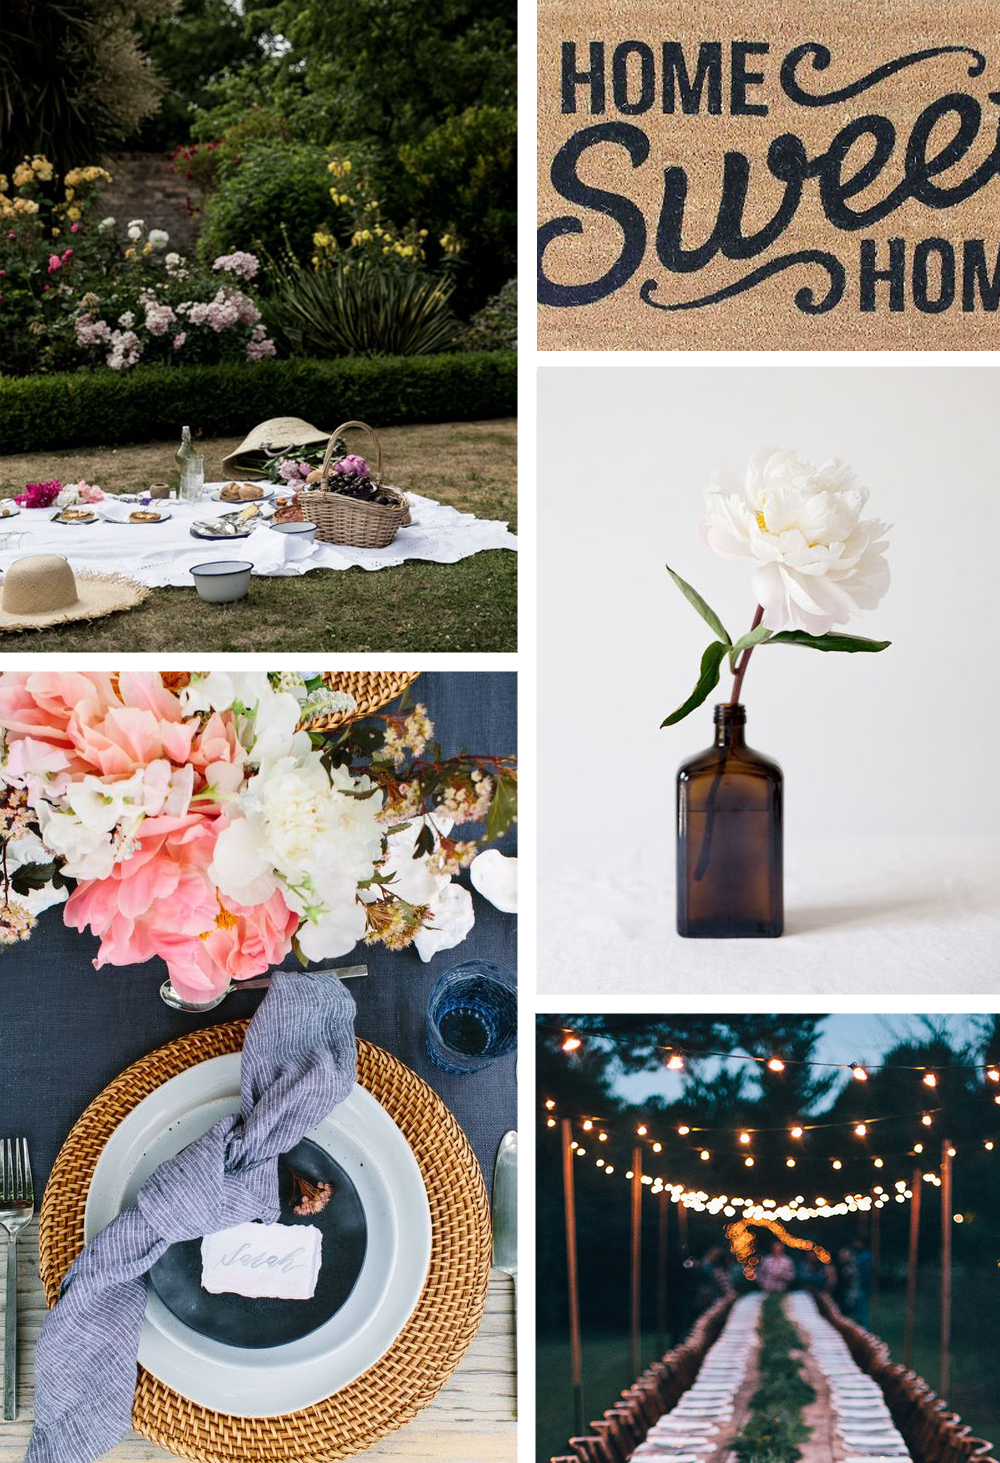 Southern House Warming Party Inspiration Images. Picnic. Table Settings. String Lights.